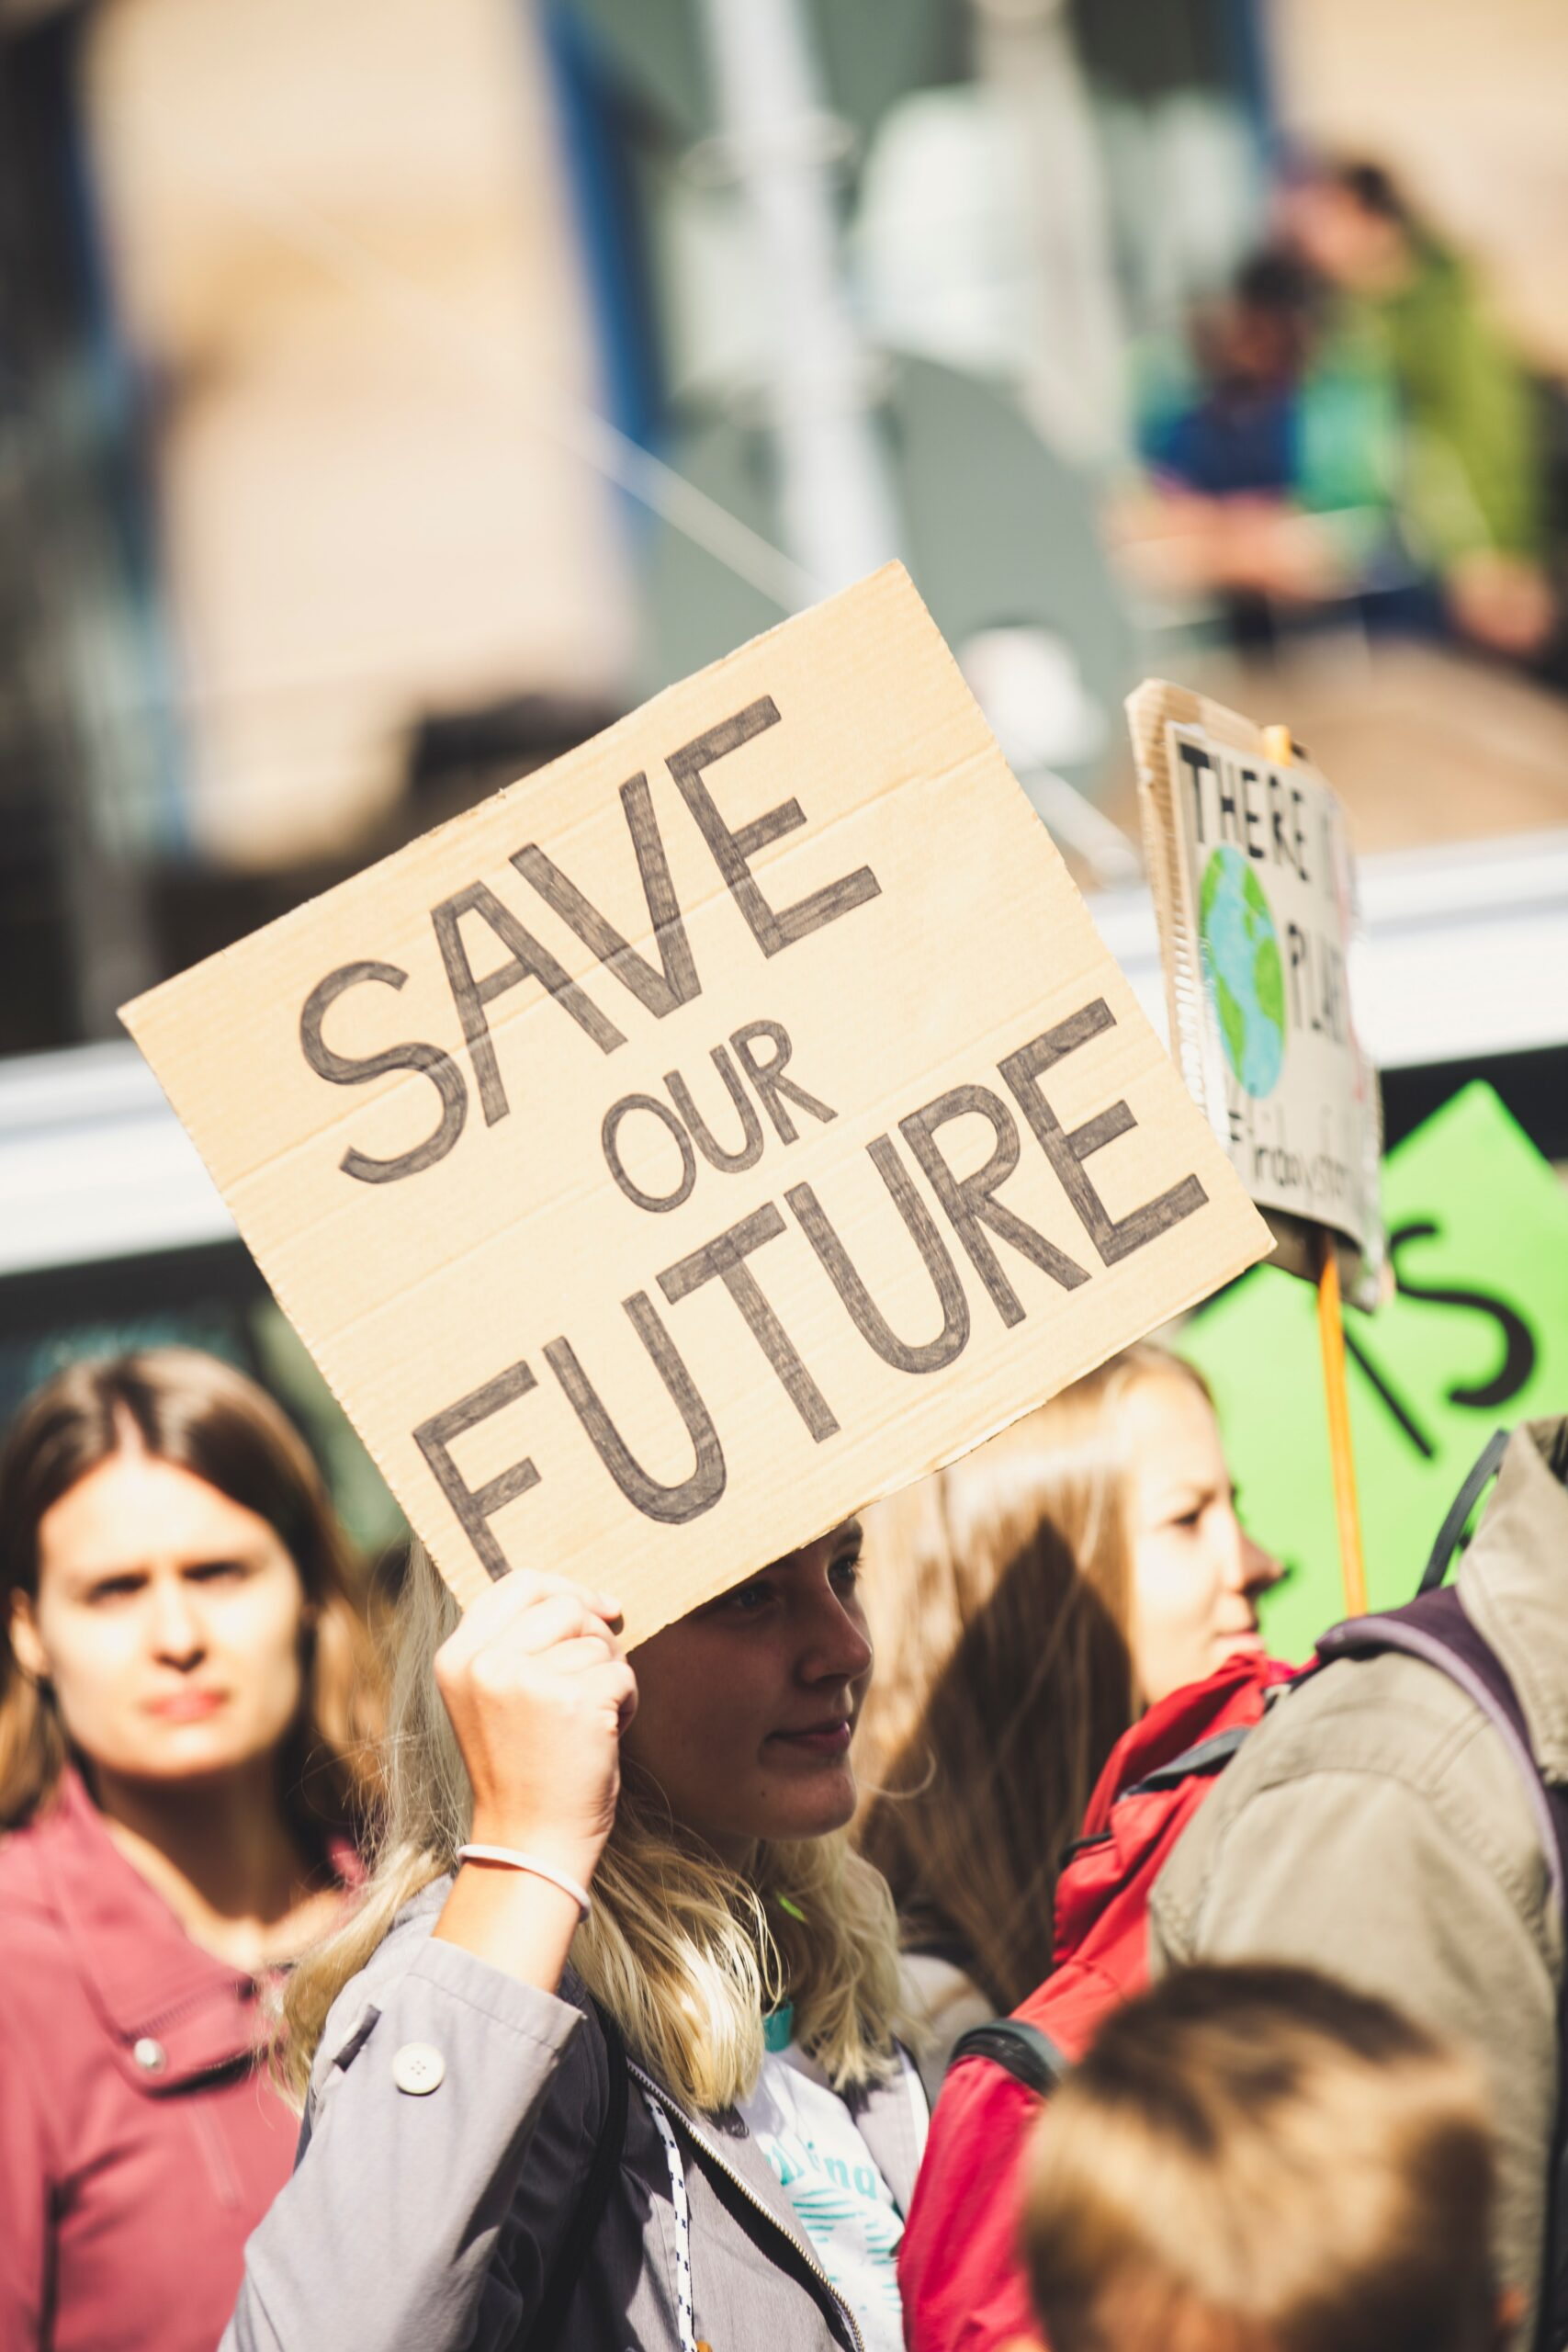 Civil society demands that Greece's Recovery Plan prioritises making  society greener and fairer